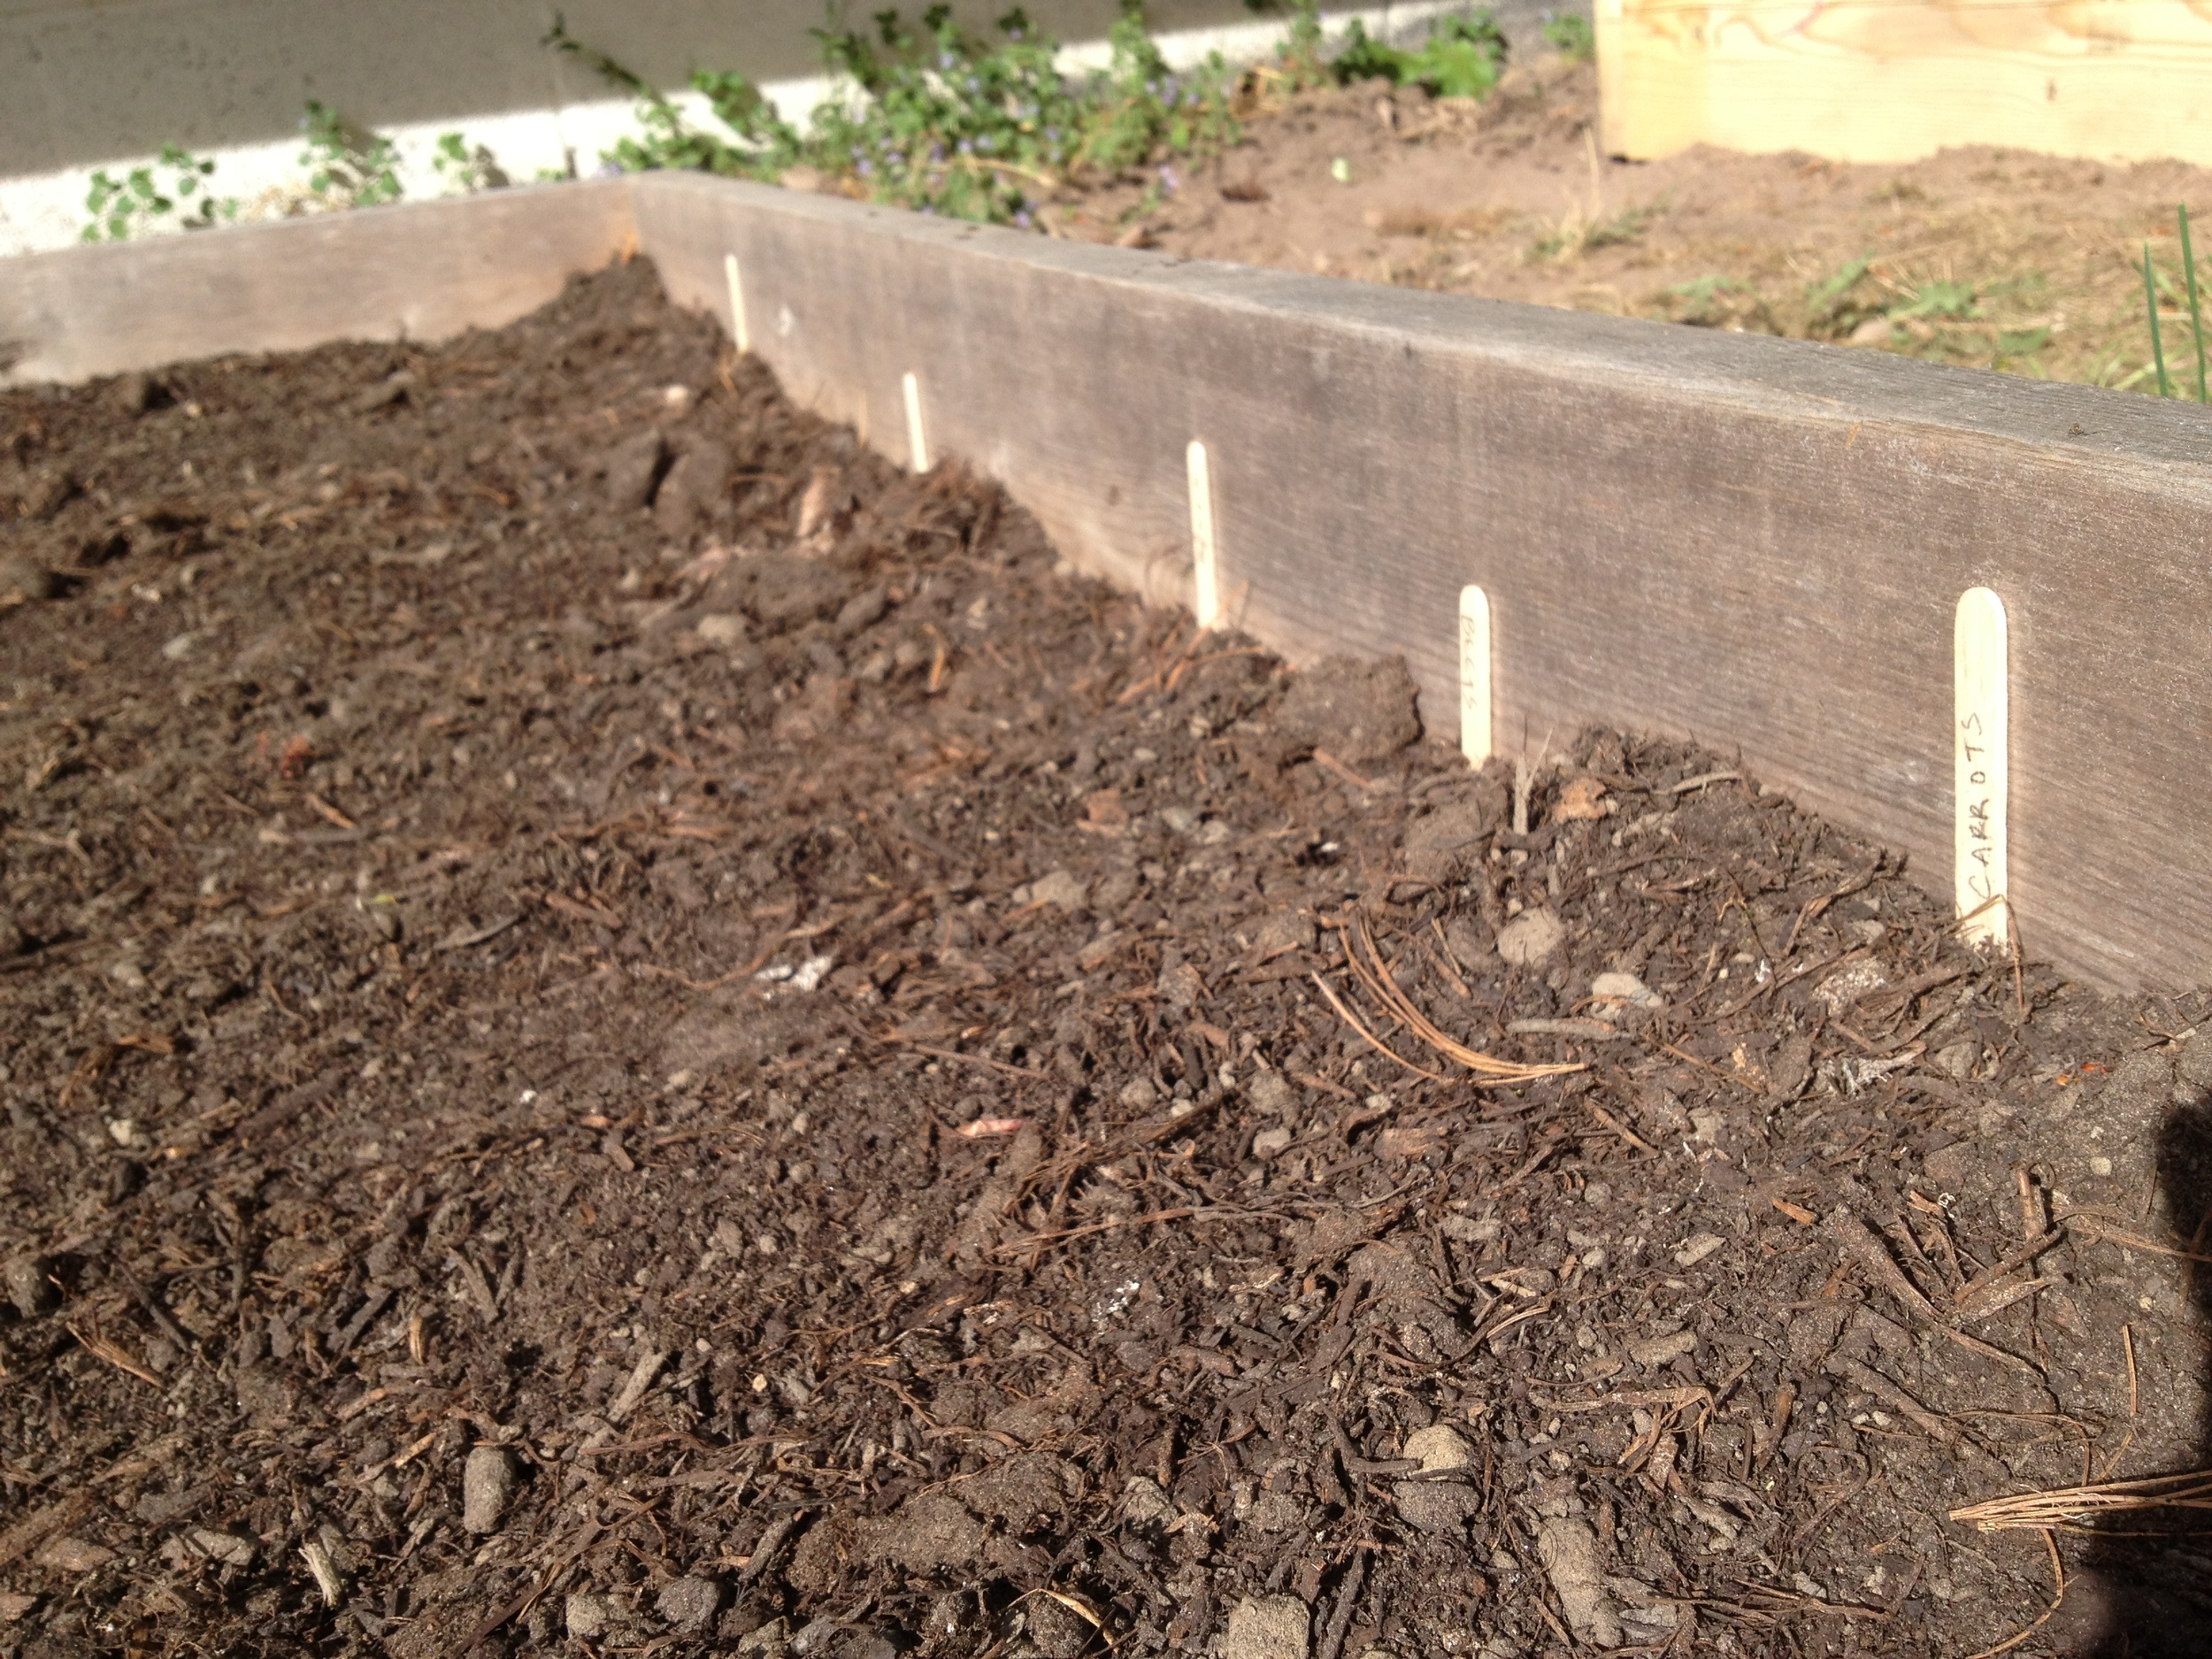 I used popsicle sticks to mark the rows.  Now that the plants have sprouted, it's easy to tell what they are.  But it's a good place holder while you're waiting.  Don't want to double plant a row!